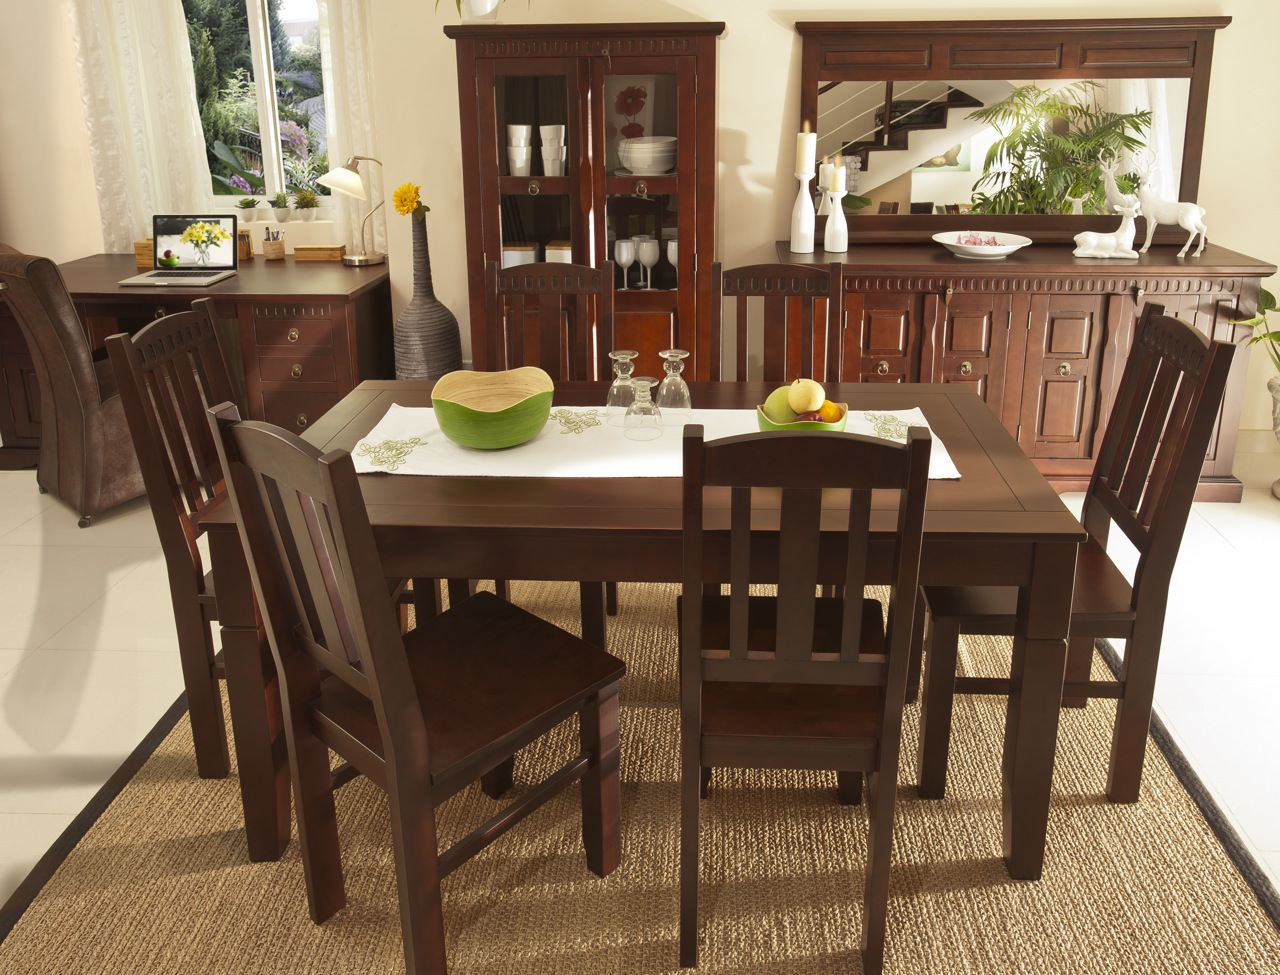 Alicante dining set.jpg